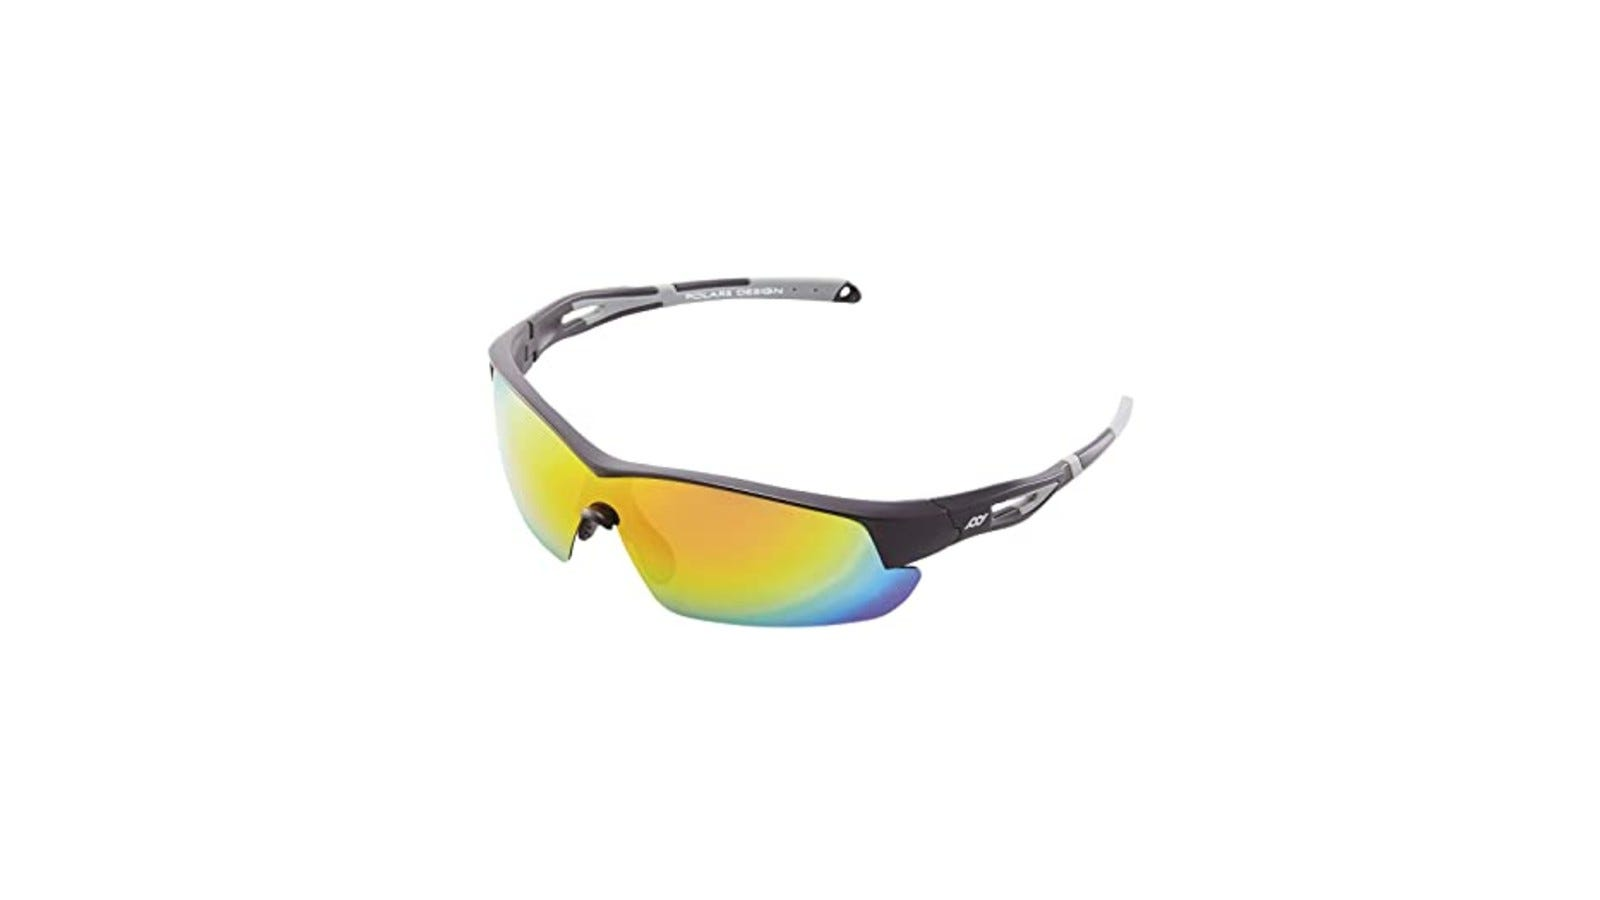 sunglasses with a gray and black frame and yellow polarized lenses